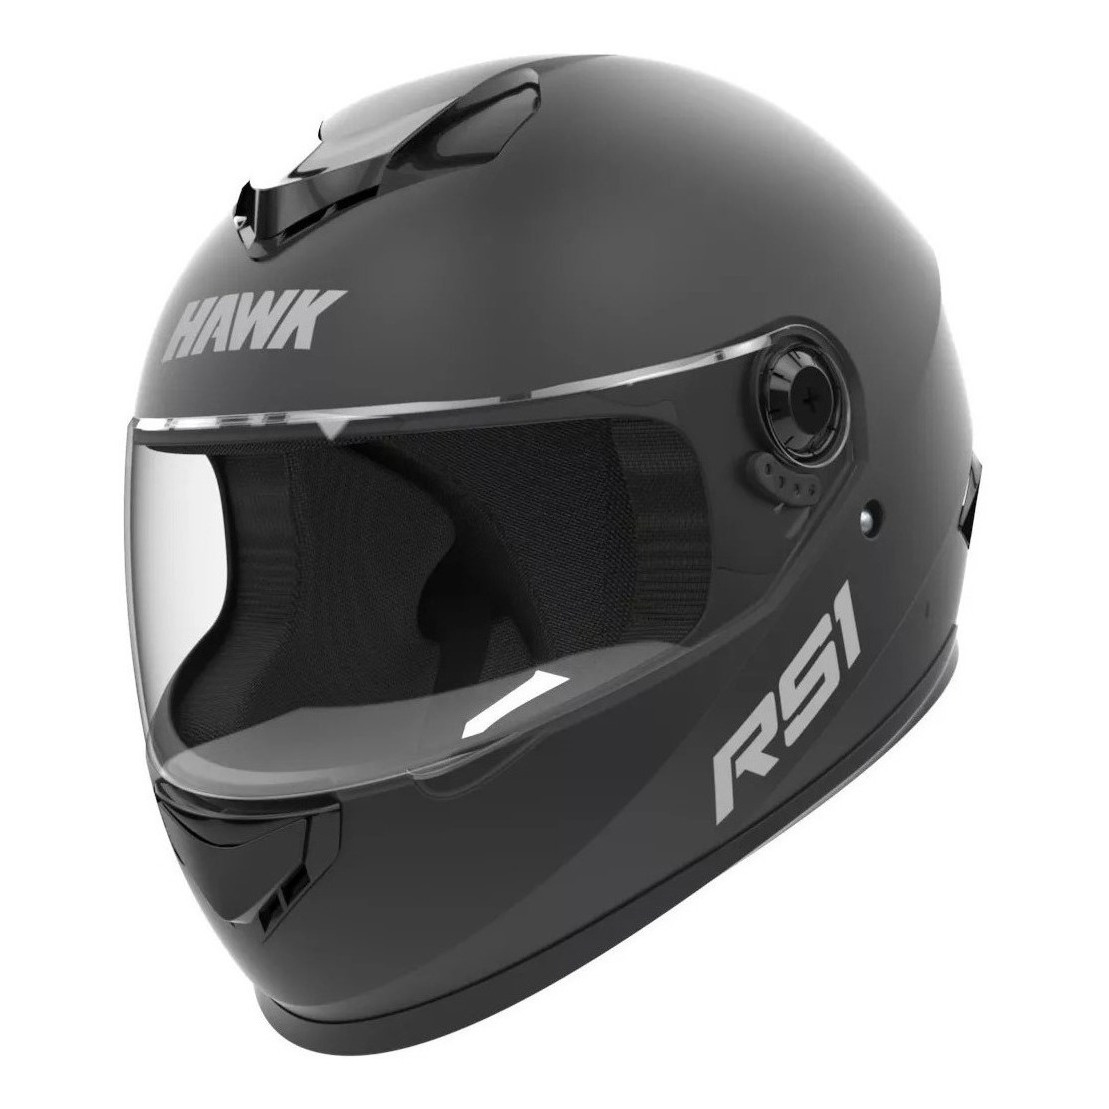 Casco Integral Hawk RS1 Negro Mate / Blanco